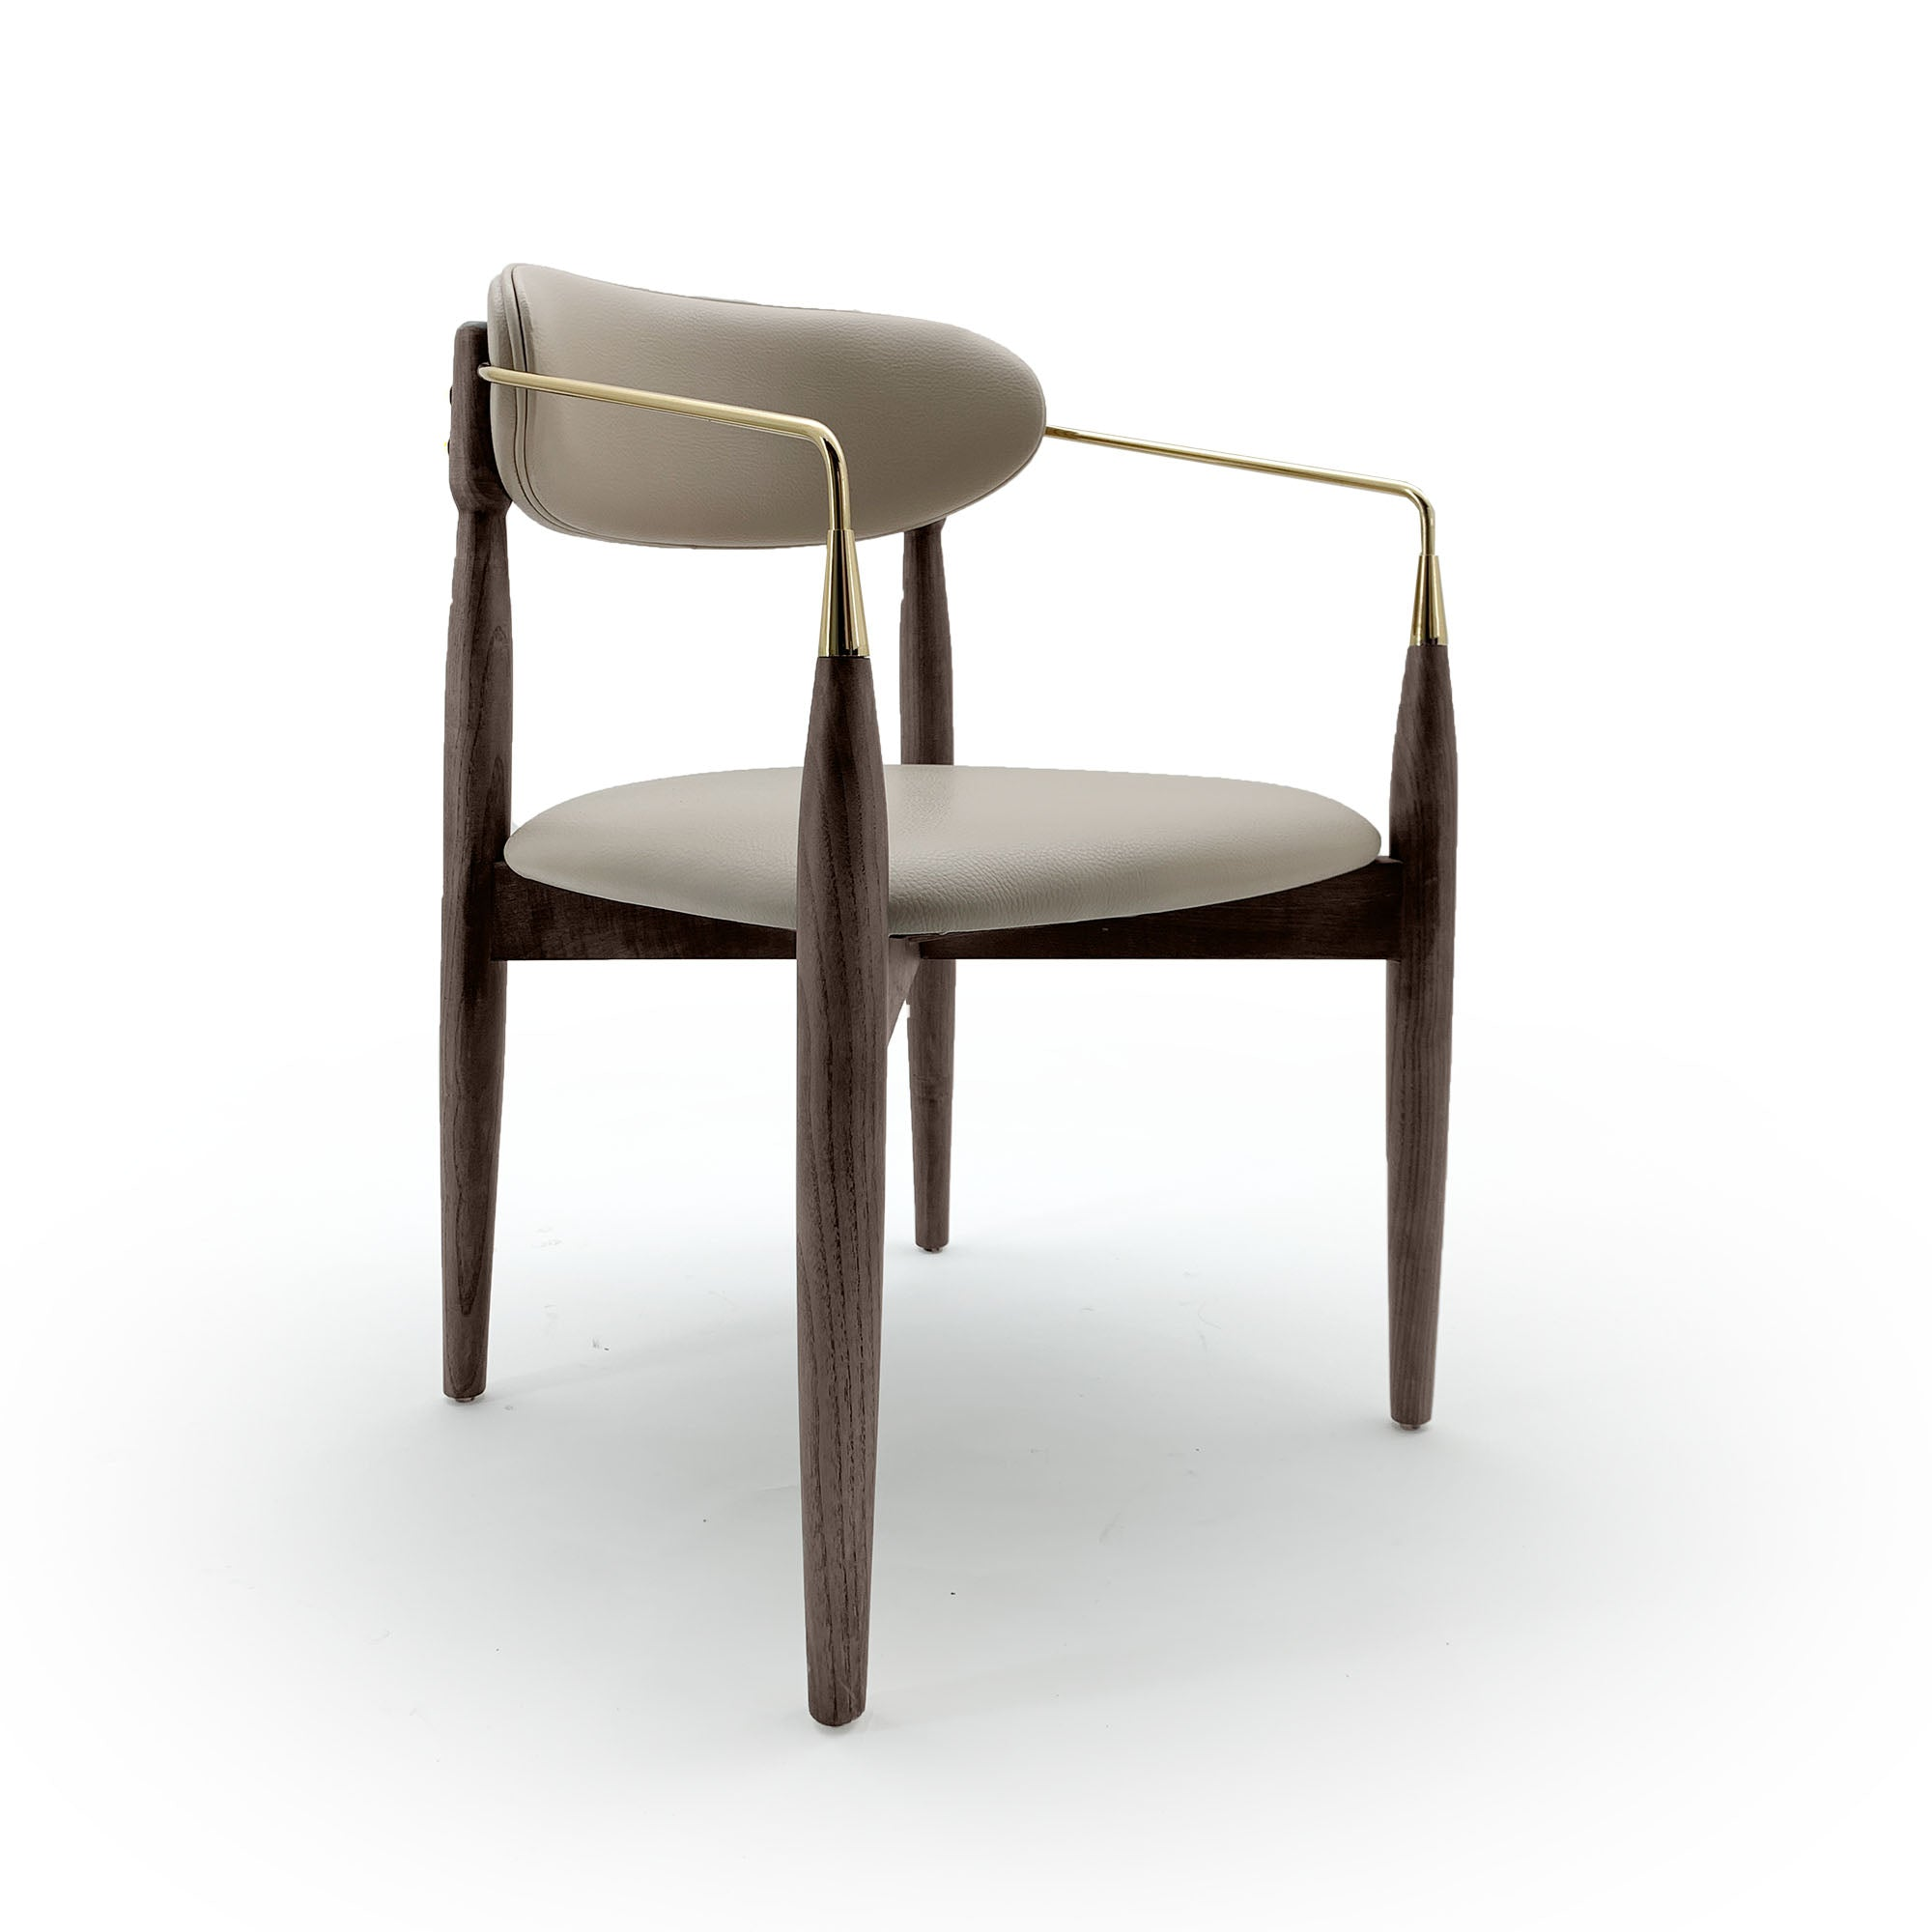 Monet Chair  MON001-beige -  كرسي مونيه - Shop Online Furniture and Home Decor Store in Dubai, UAE at ebarza